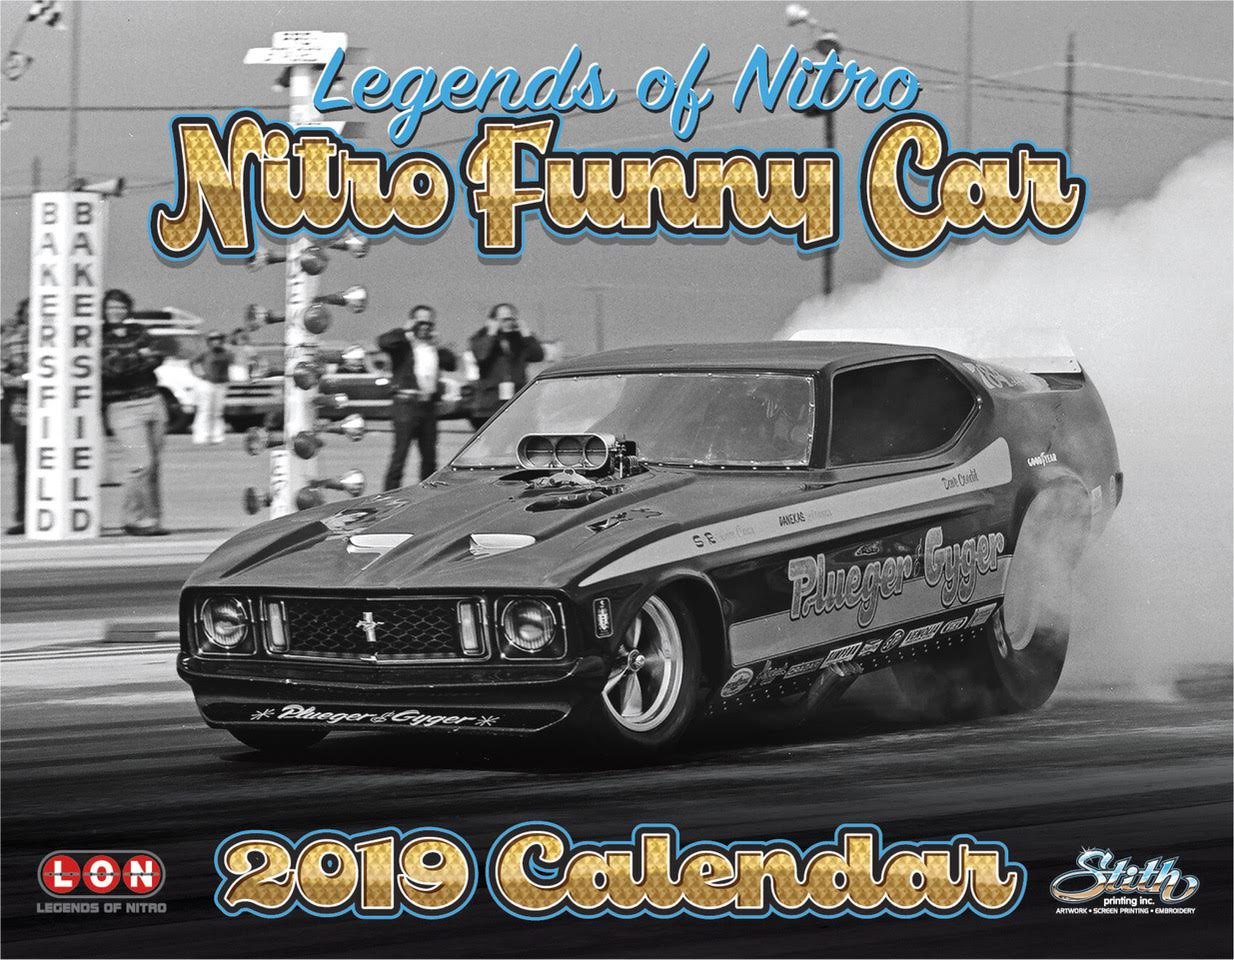 Still Needing A Christmas Gift Idea? Legends Of Nitro Have Two 2019 Calendars To Choose From!